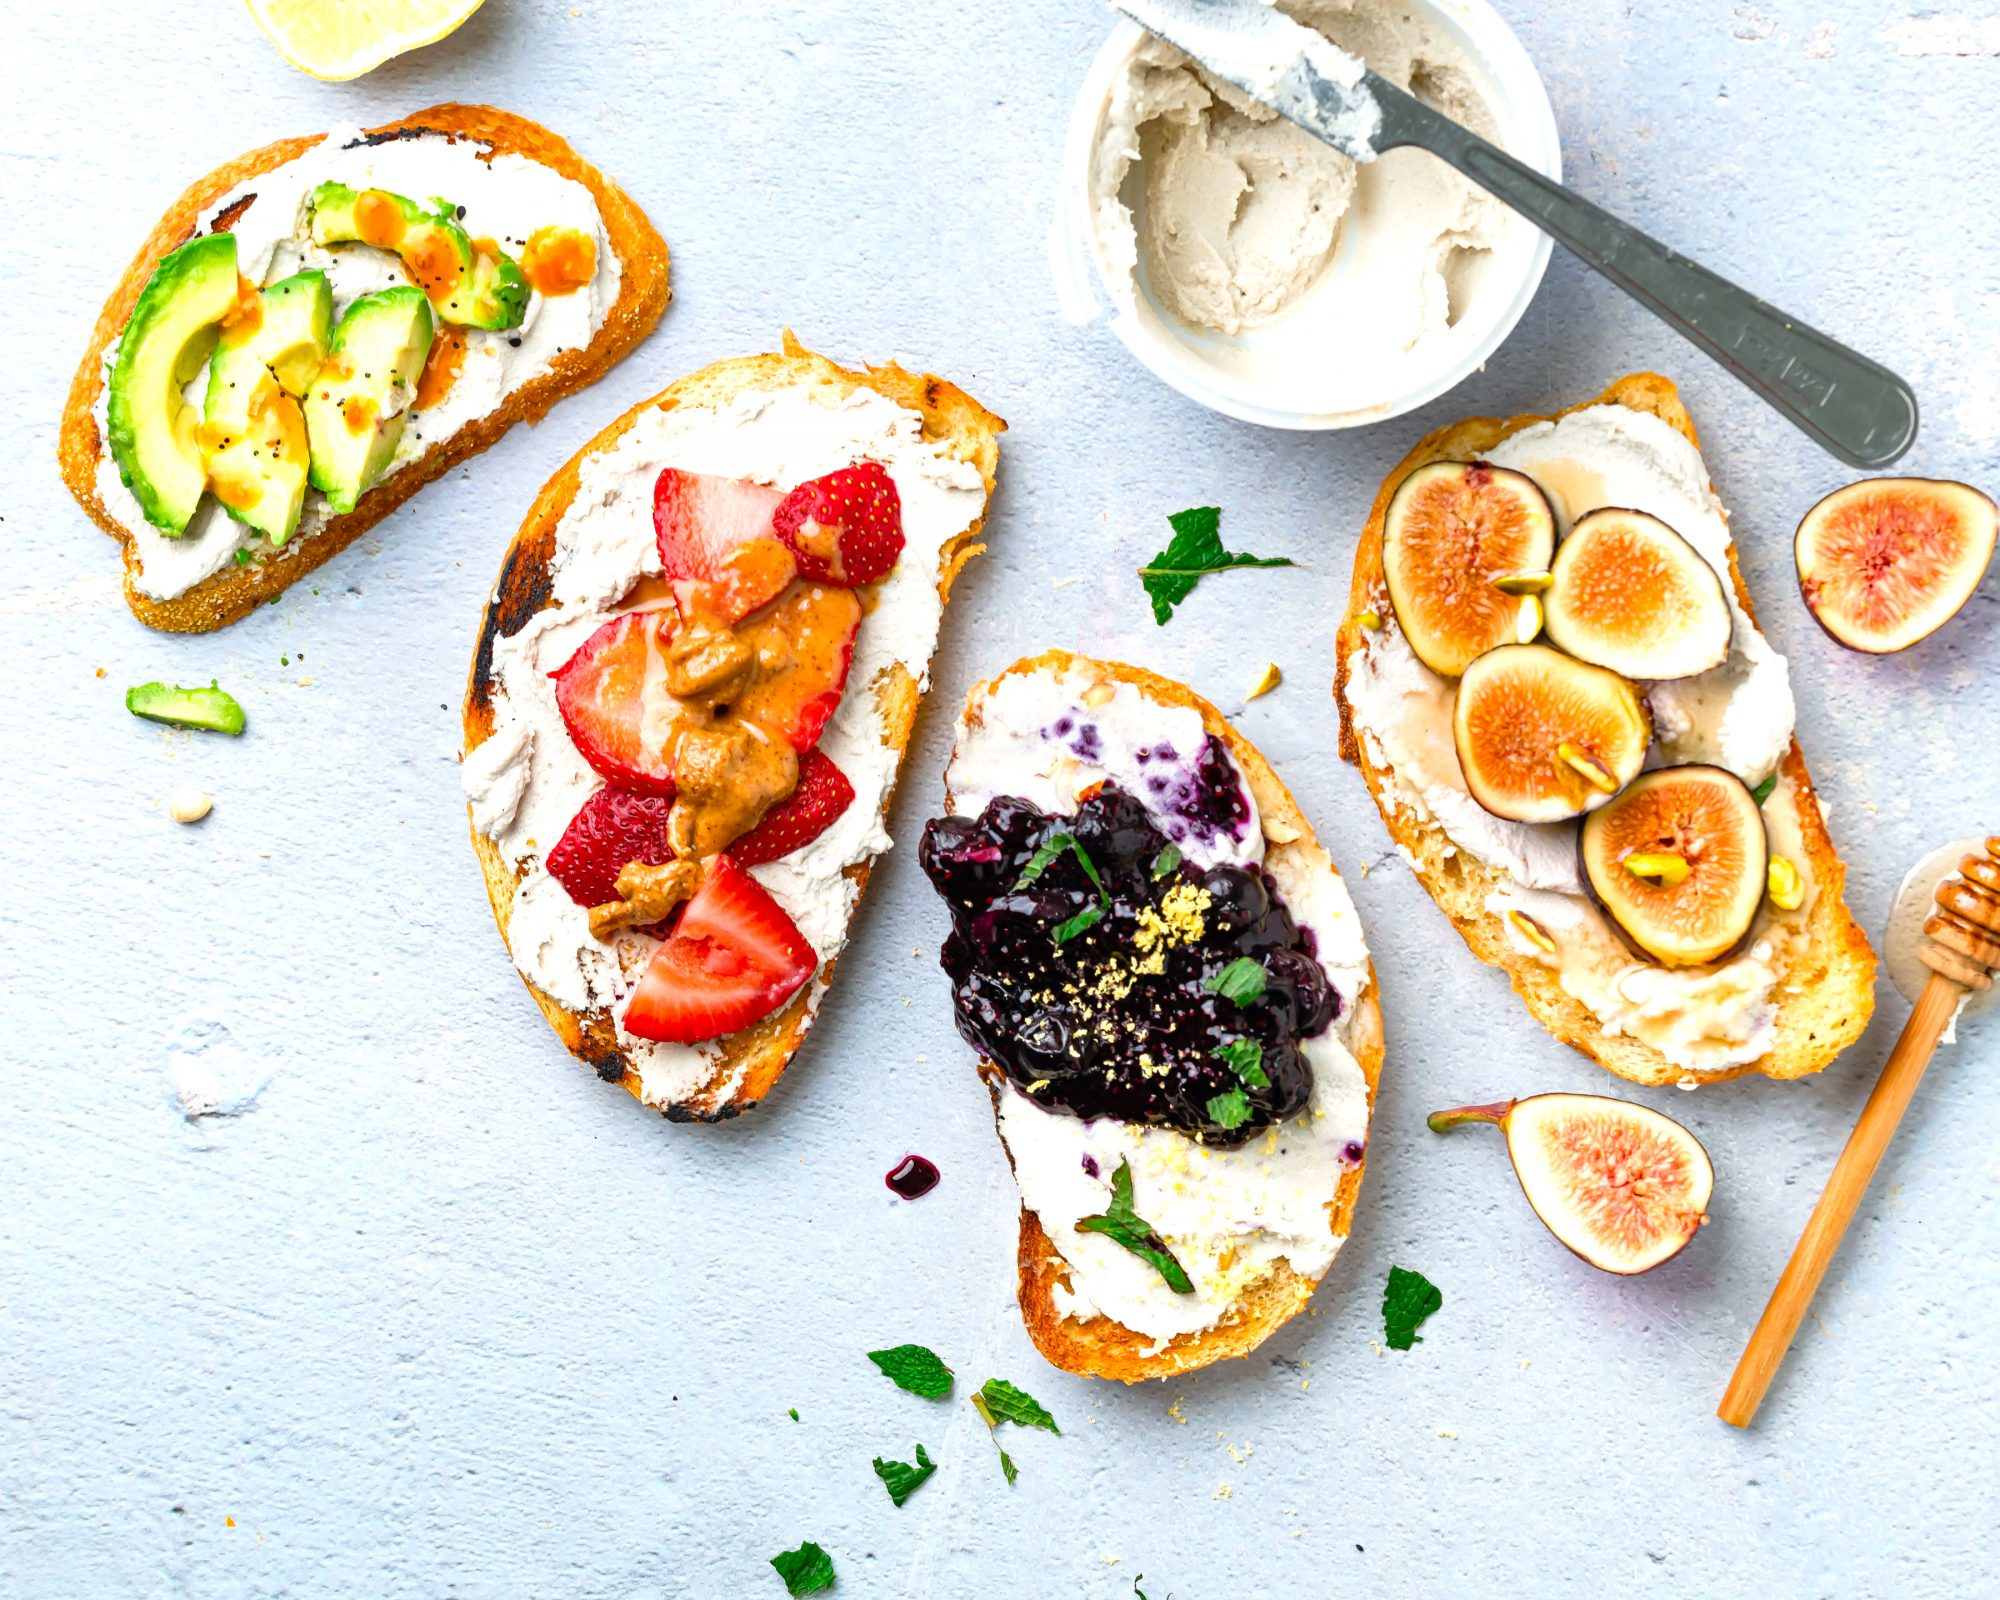 Toasts topped with vegan cream cheese and fruits, jam, and avocado